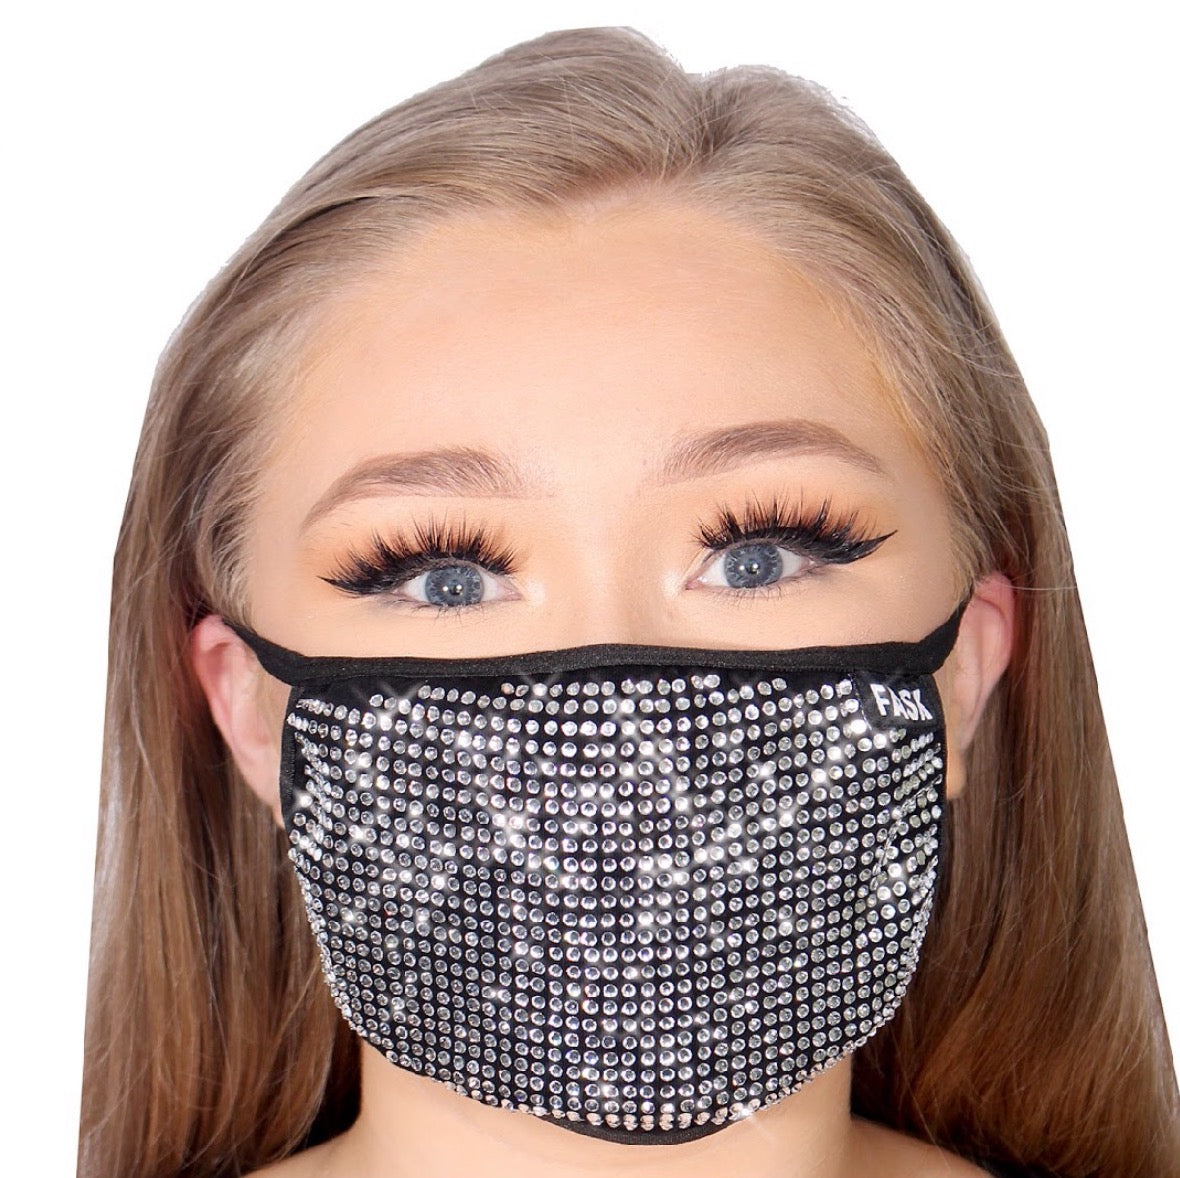 FASK Full Stoned Cotton 2.0 Stoned Mask with Interchangeable Filter and Adjustable Size Strap